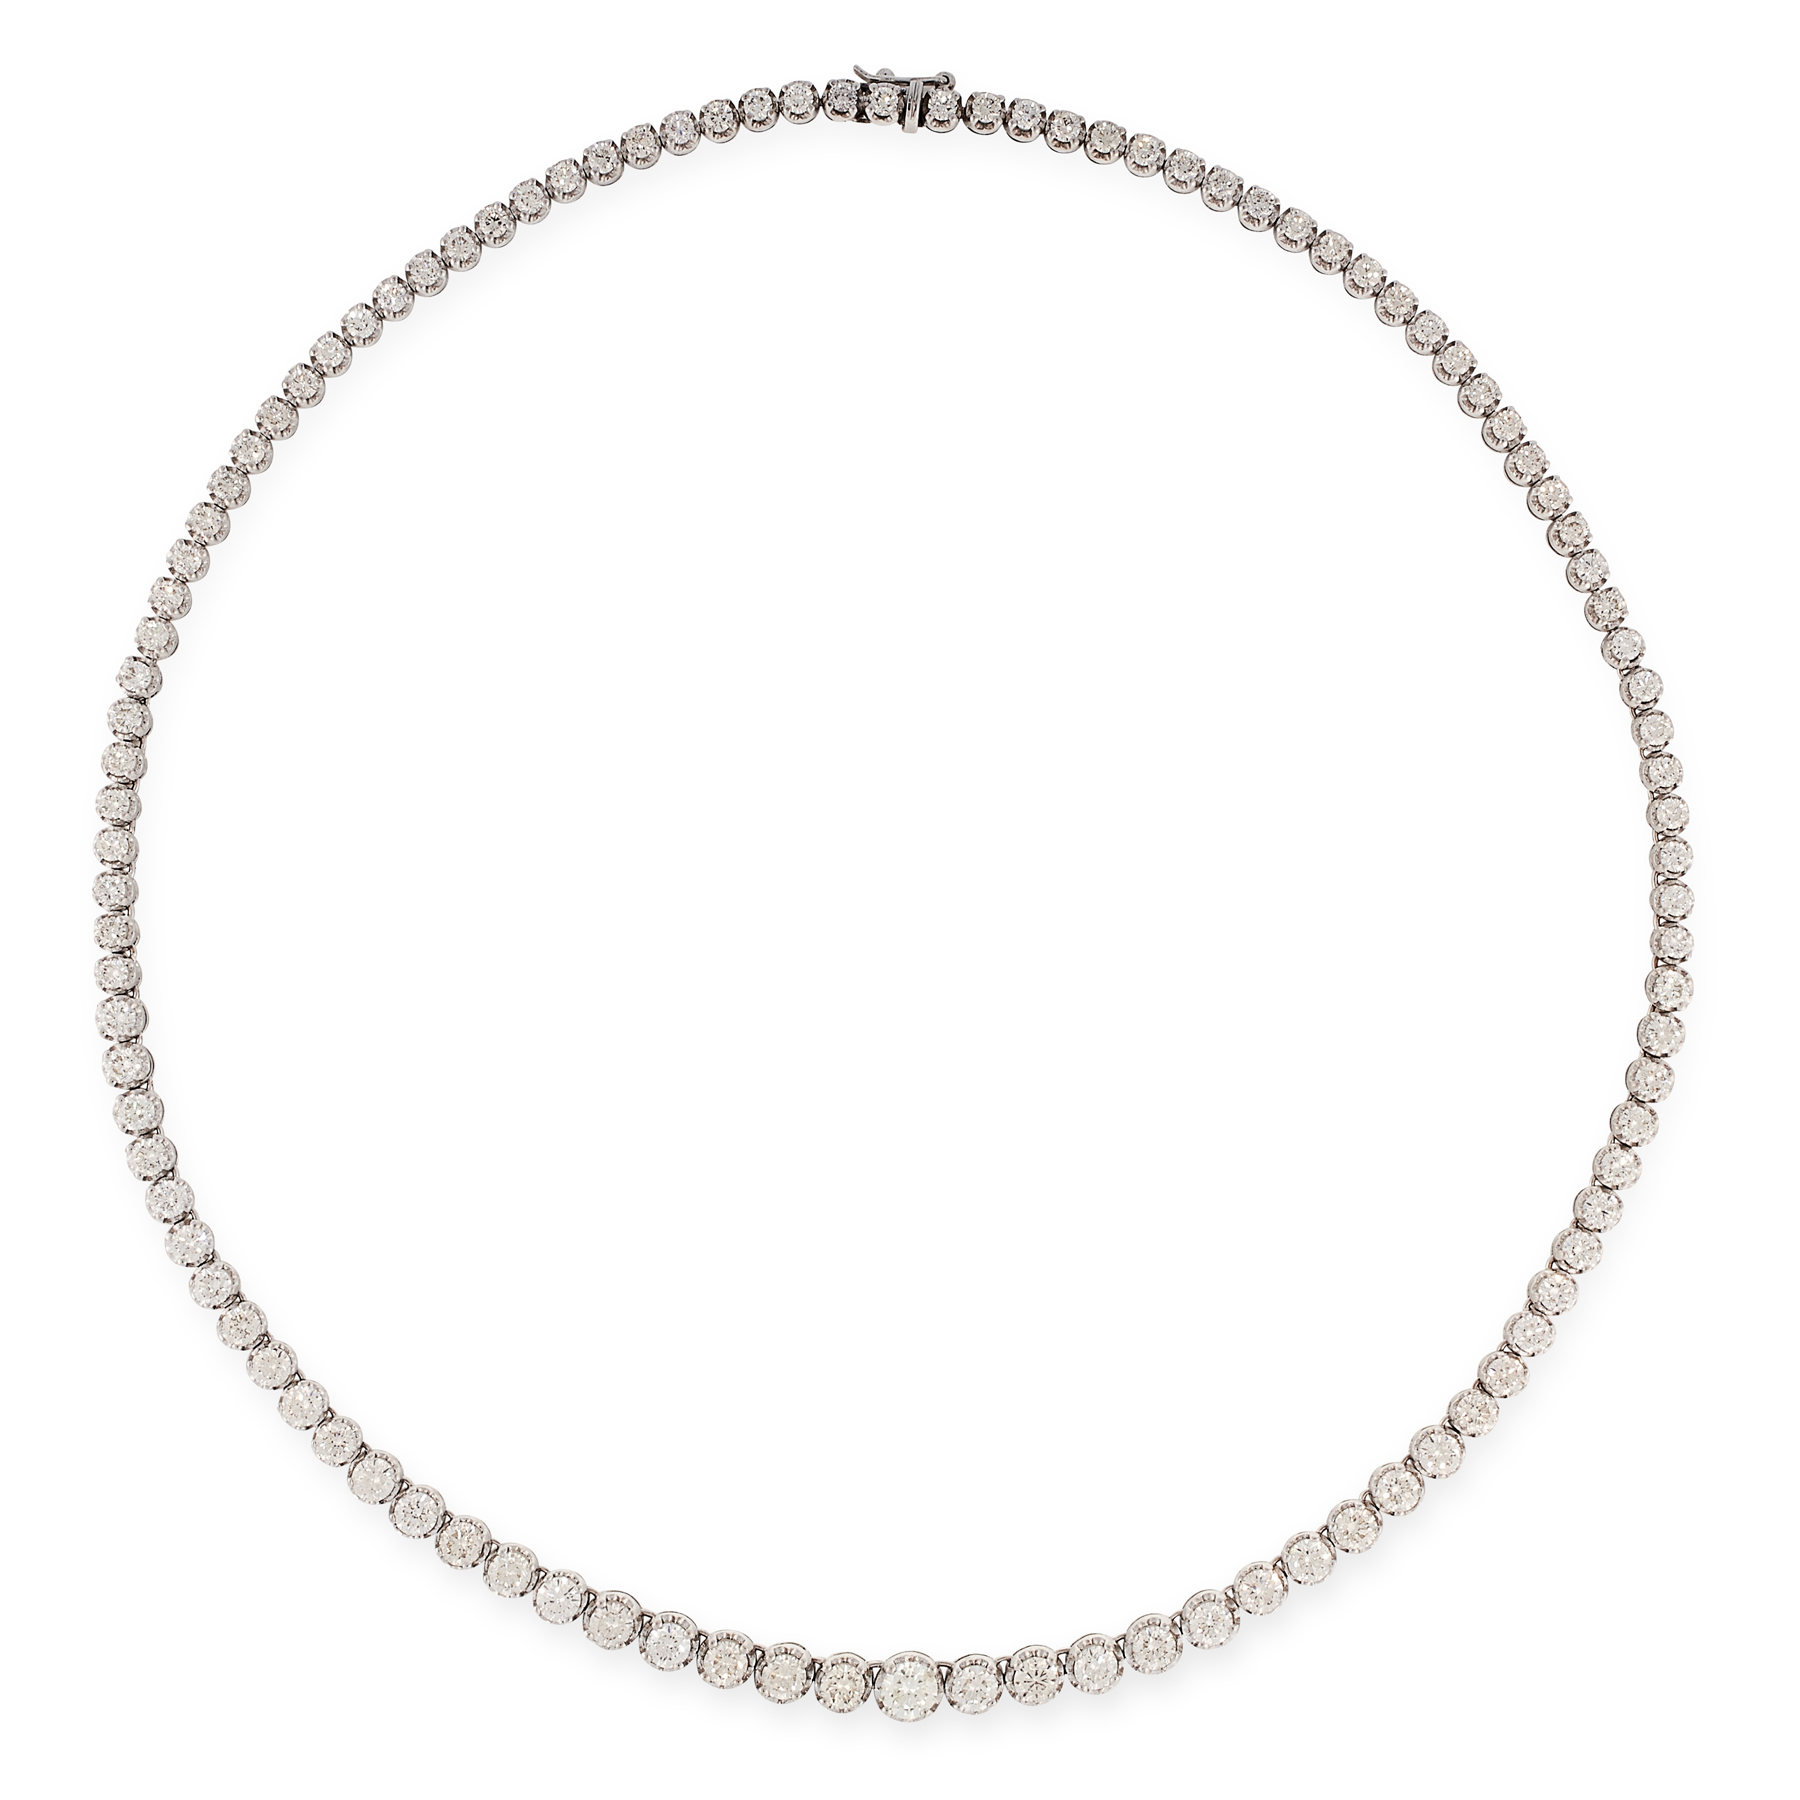 A 14.50 CARAT DIAMOND RIVIERE NECKLACE in 18ct white gold, comprising a single row of graduated